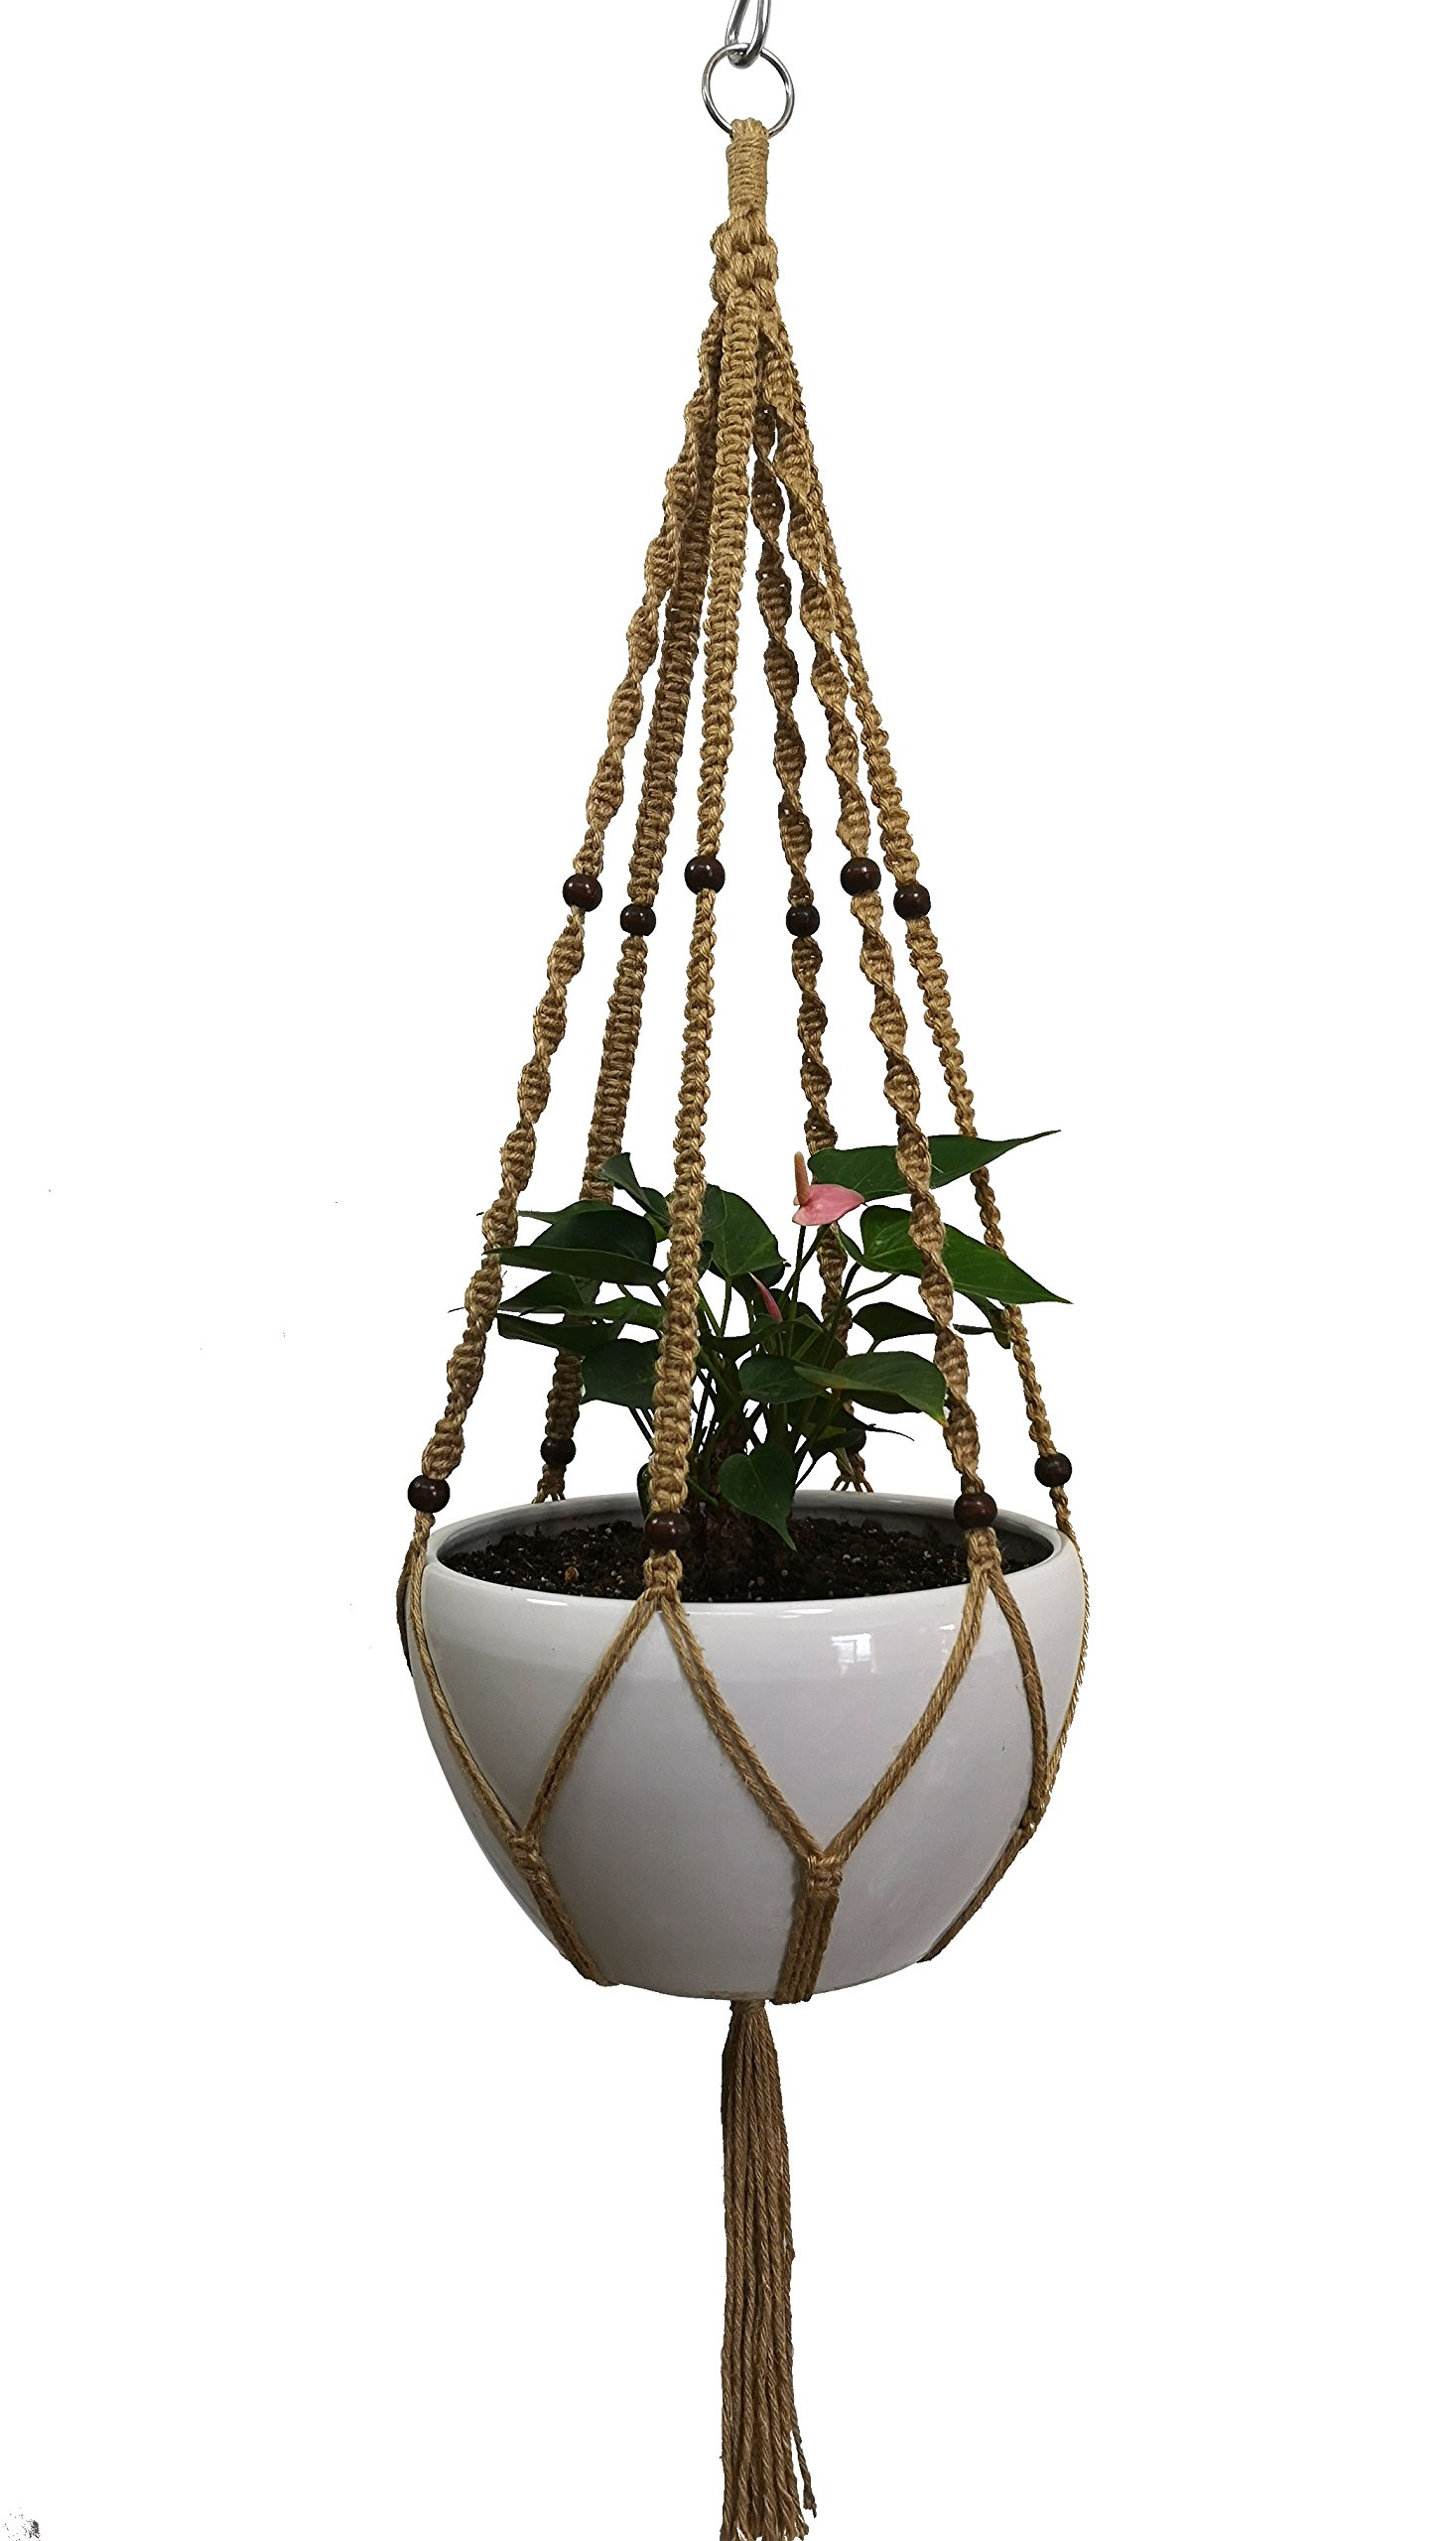 Plant Hanger Macrame Cotton 6 Legs 51 inches in Tan and Green Color for Indoor Outdoor, Living Room, Kitchen, Deck, Patio, High and Low Ceiling with Size of 10-12 inches Without The Pot (Brown-Jute)